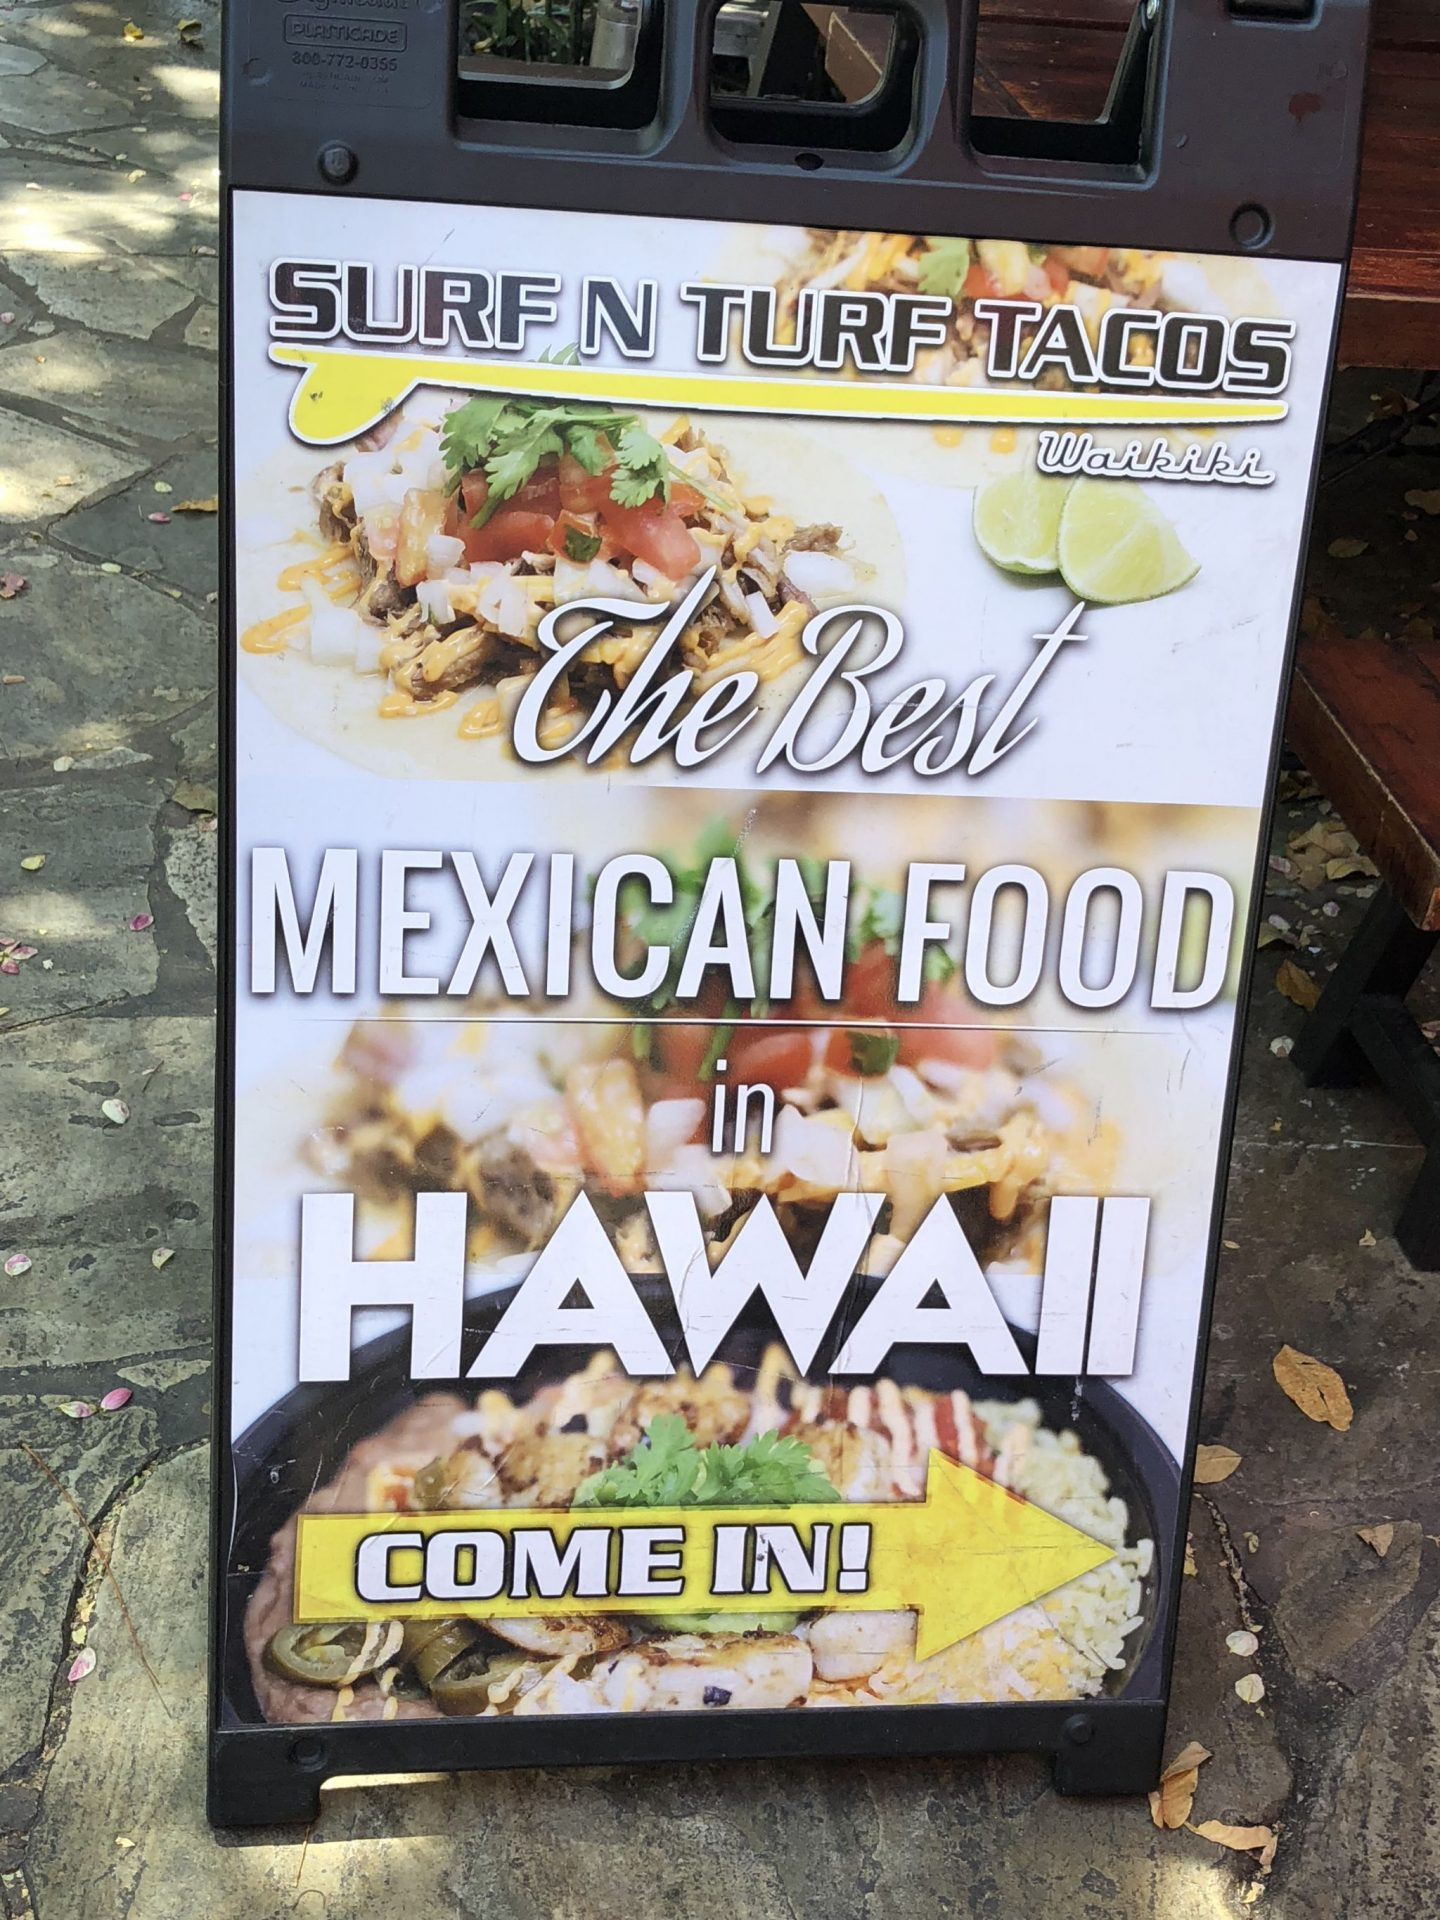 Surf and turf tacos Hawaii